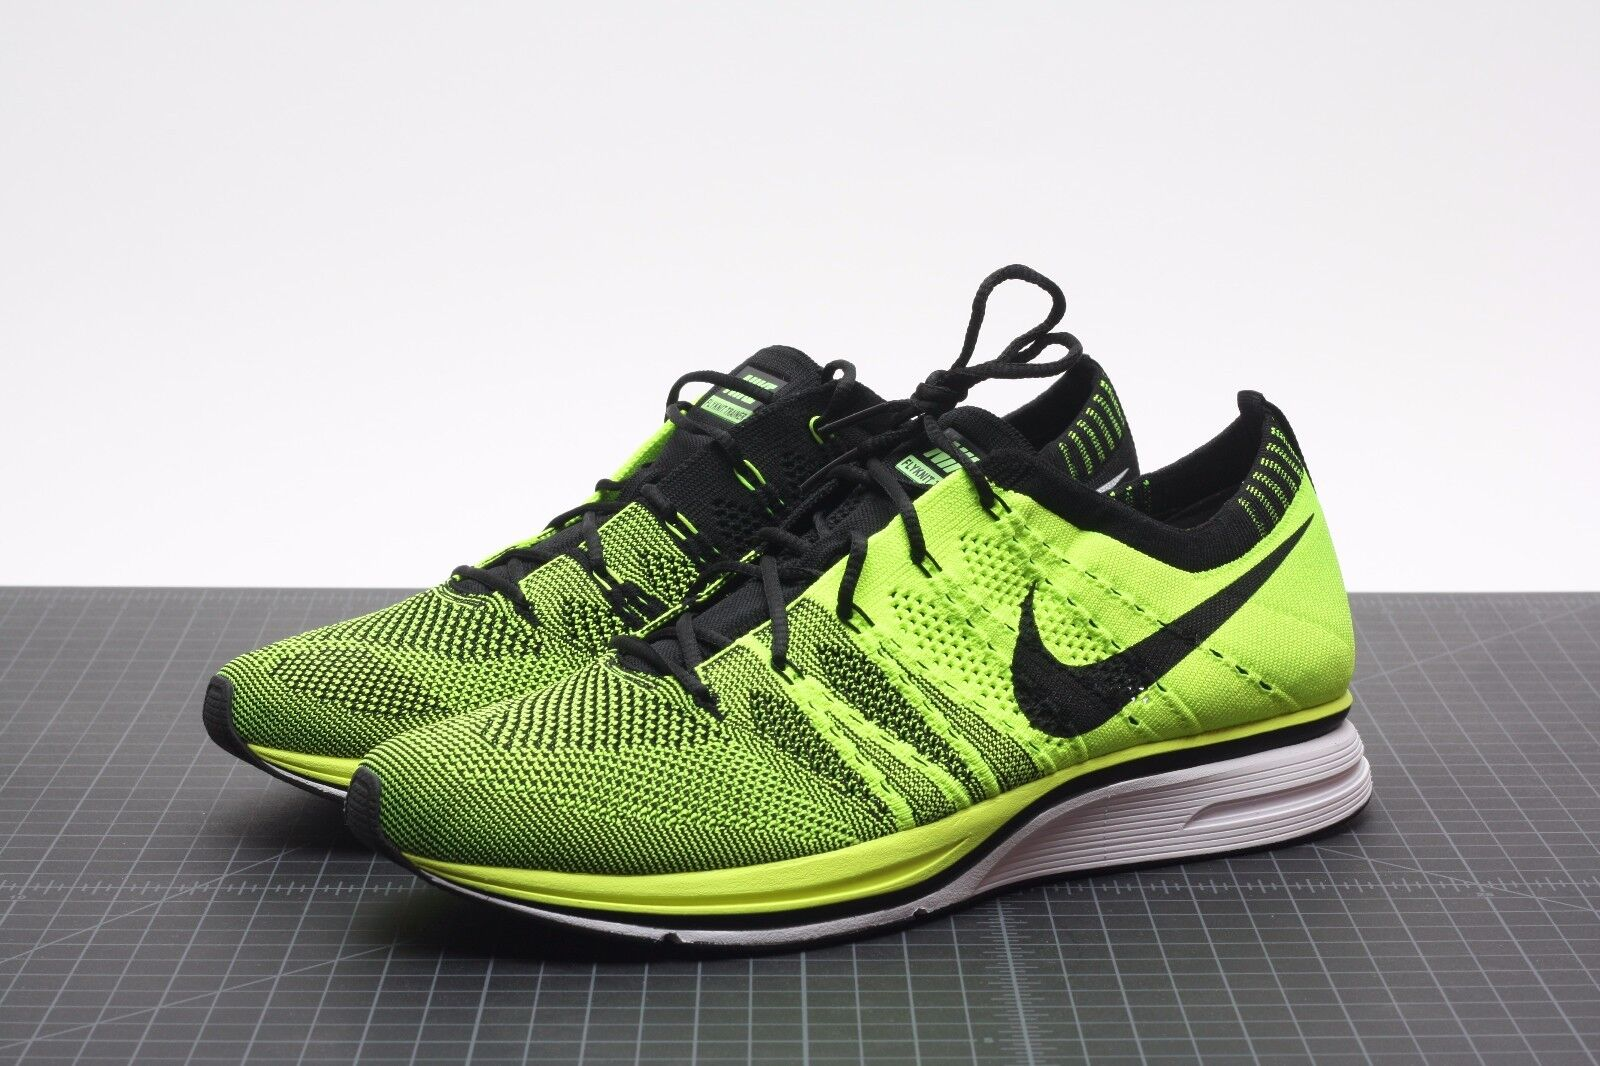 premium selection 71d2d e2539 nike flyknit trainer + volt black